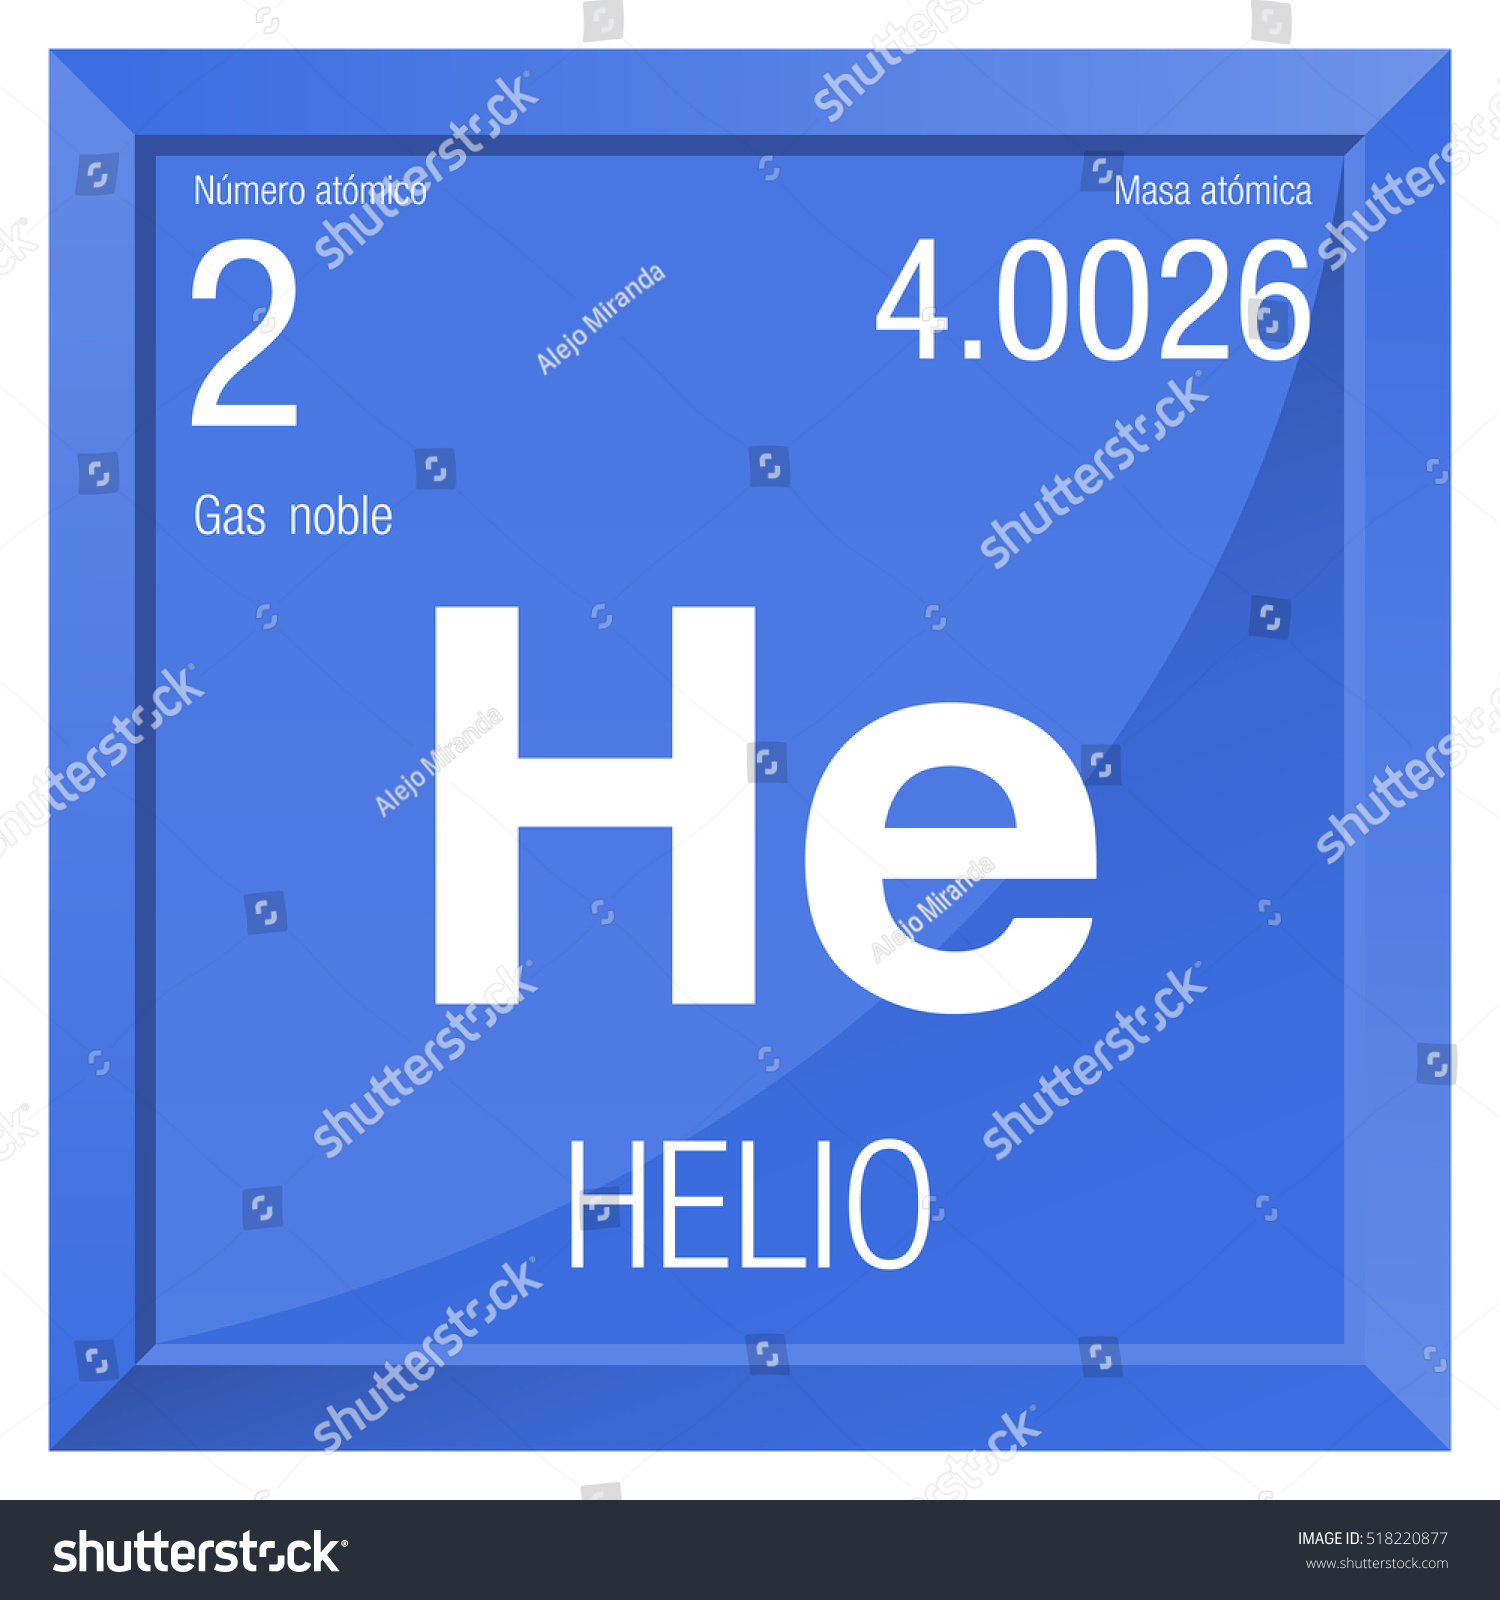 Helio symbol helium spanish language element stock vector helio symbol helium in spanish language element number 2 of the periodic table of gamestrikefo Images